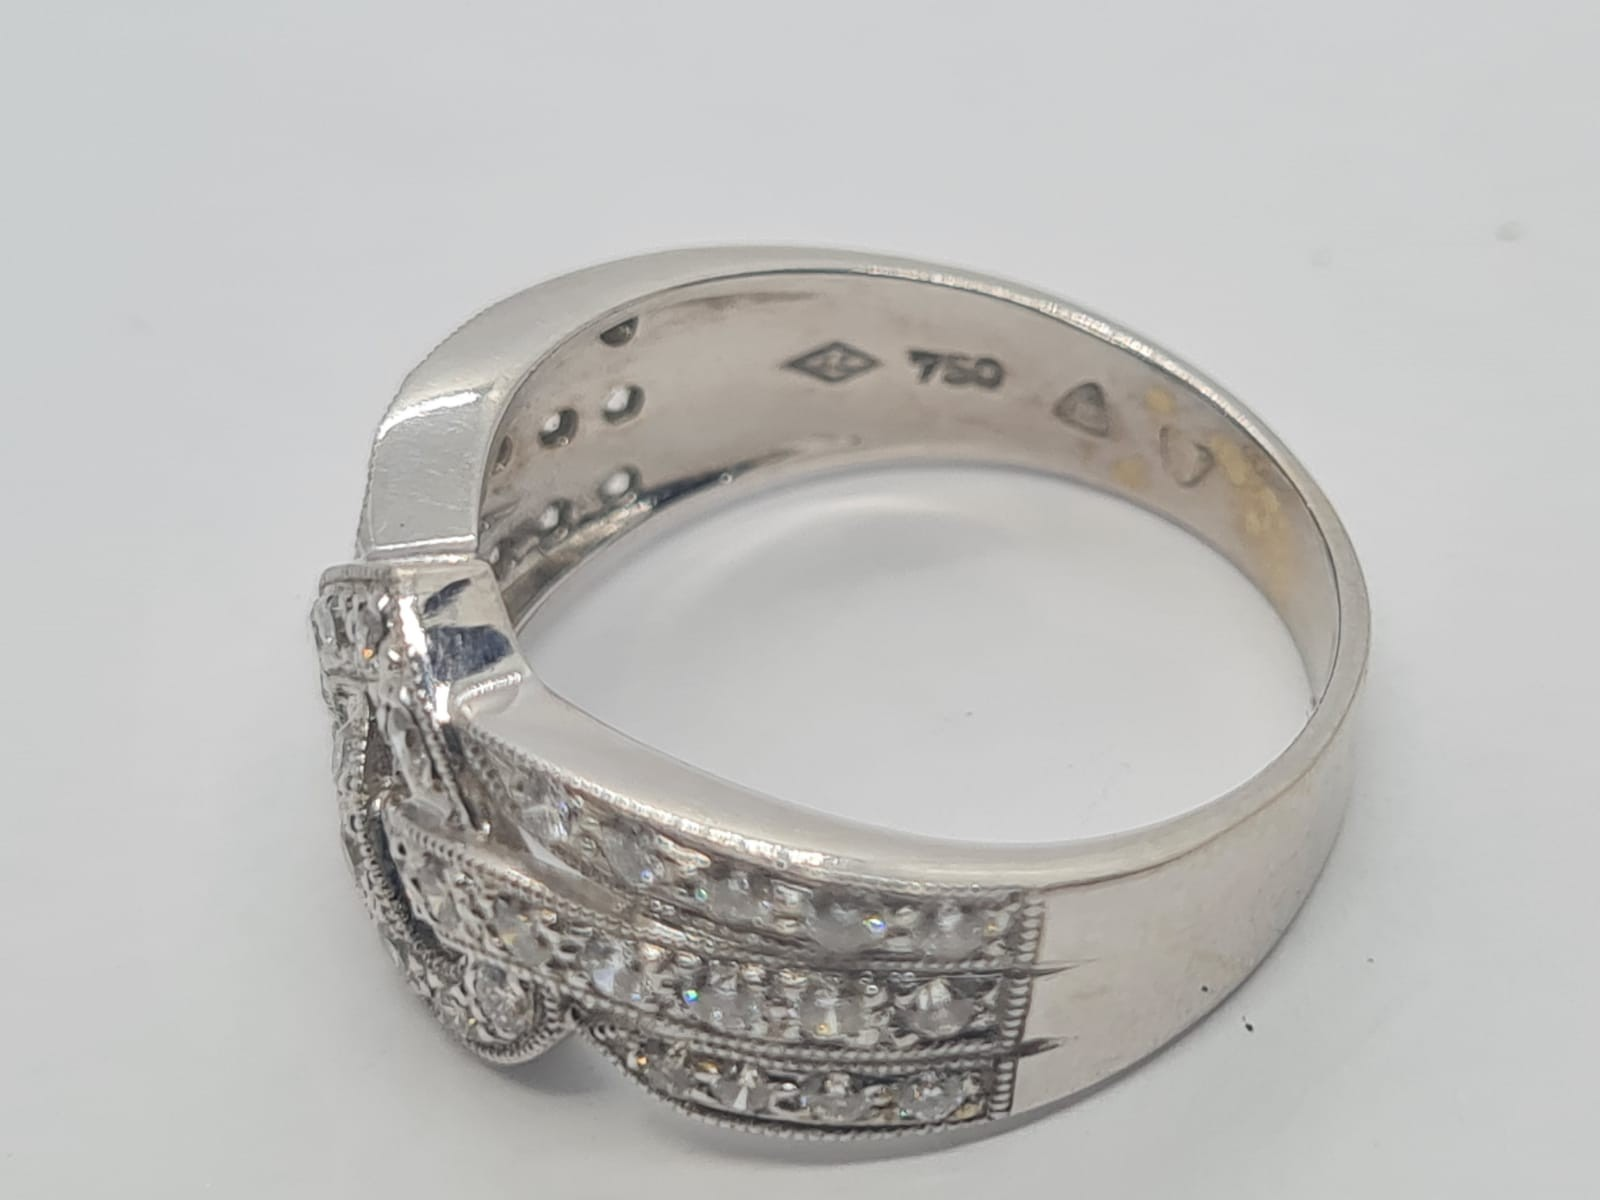 18k white gold heart design diamond ring, weight 4.4g and size L and approx 1ct diamonds - Image 4 of 4